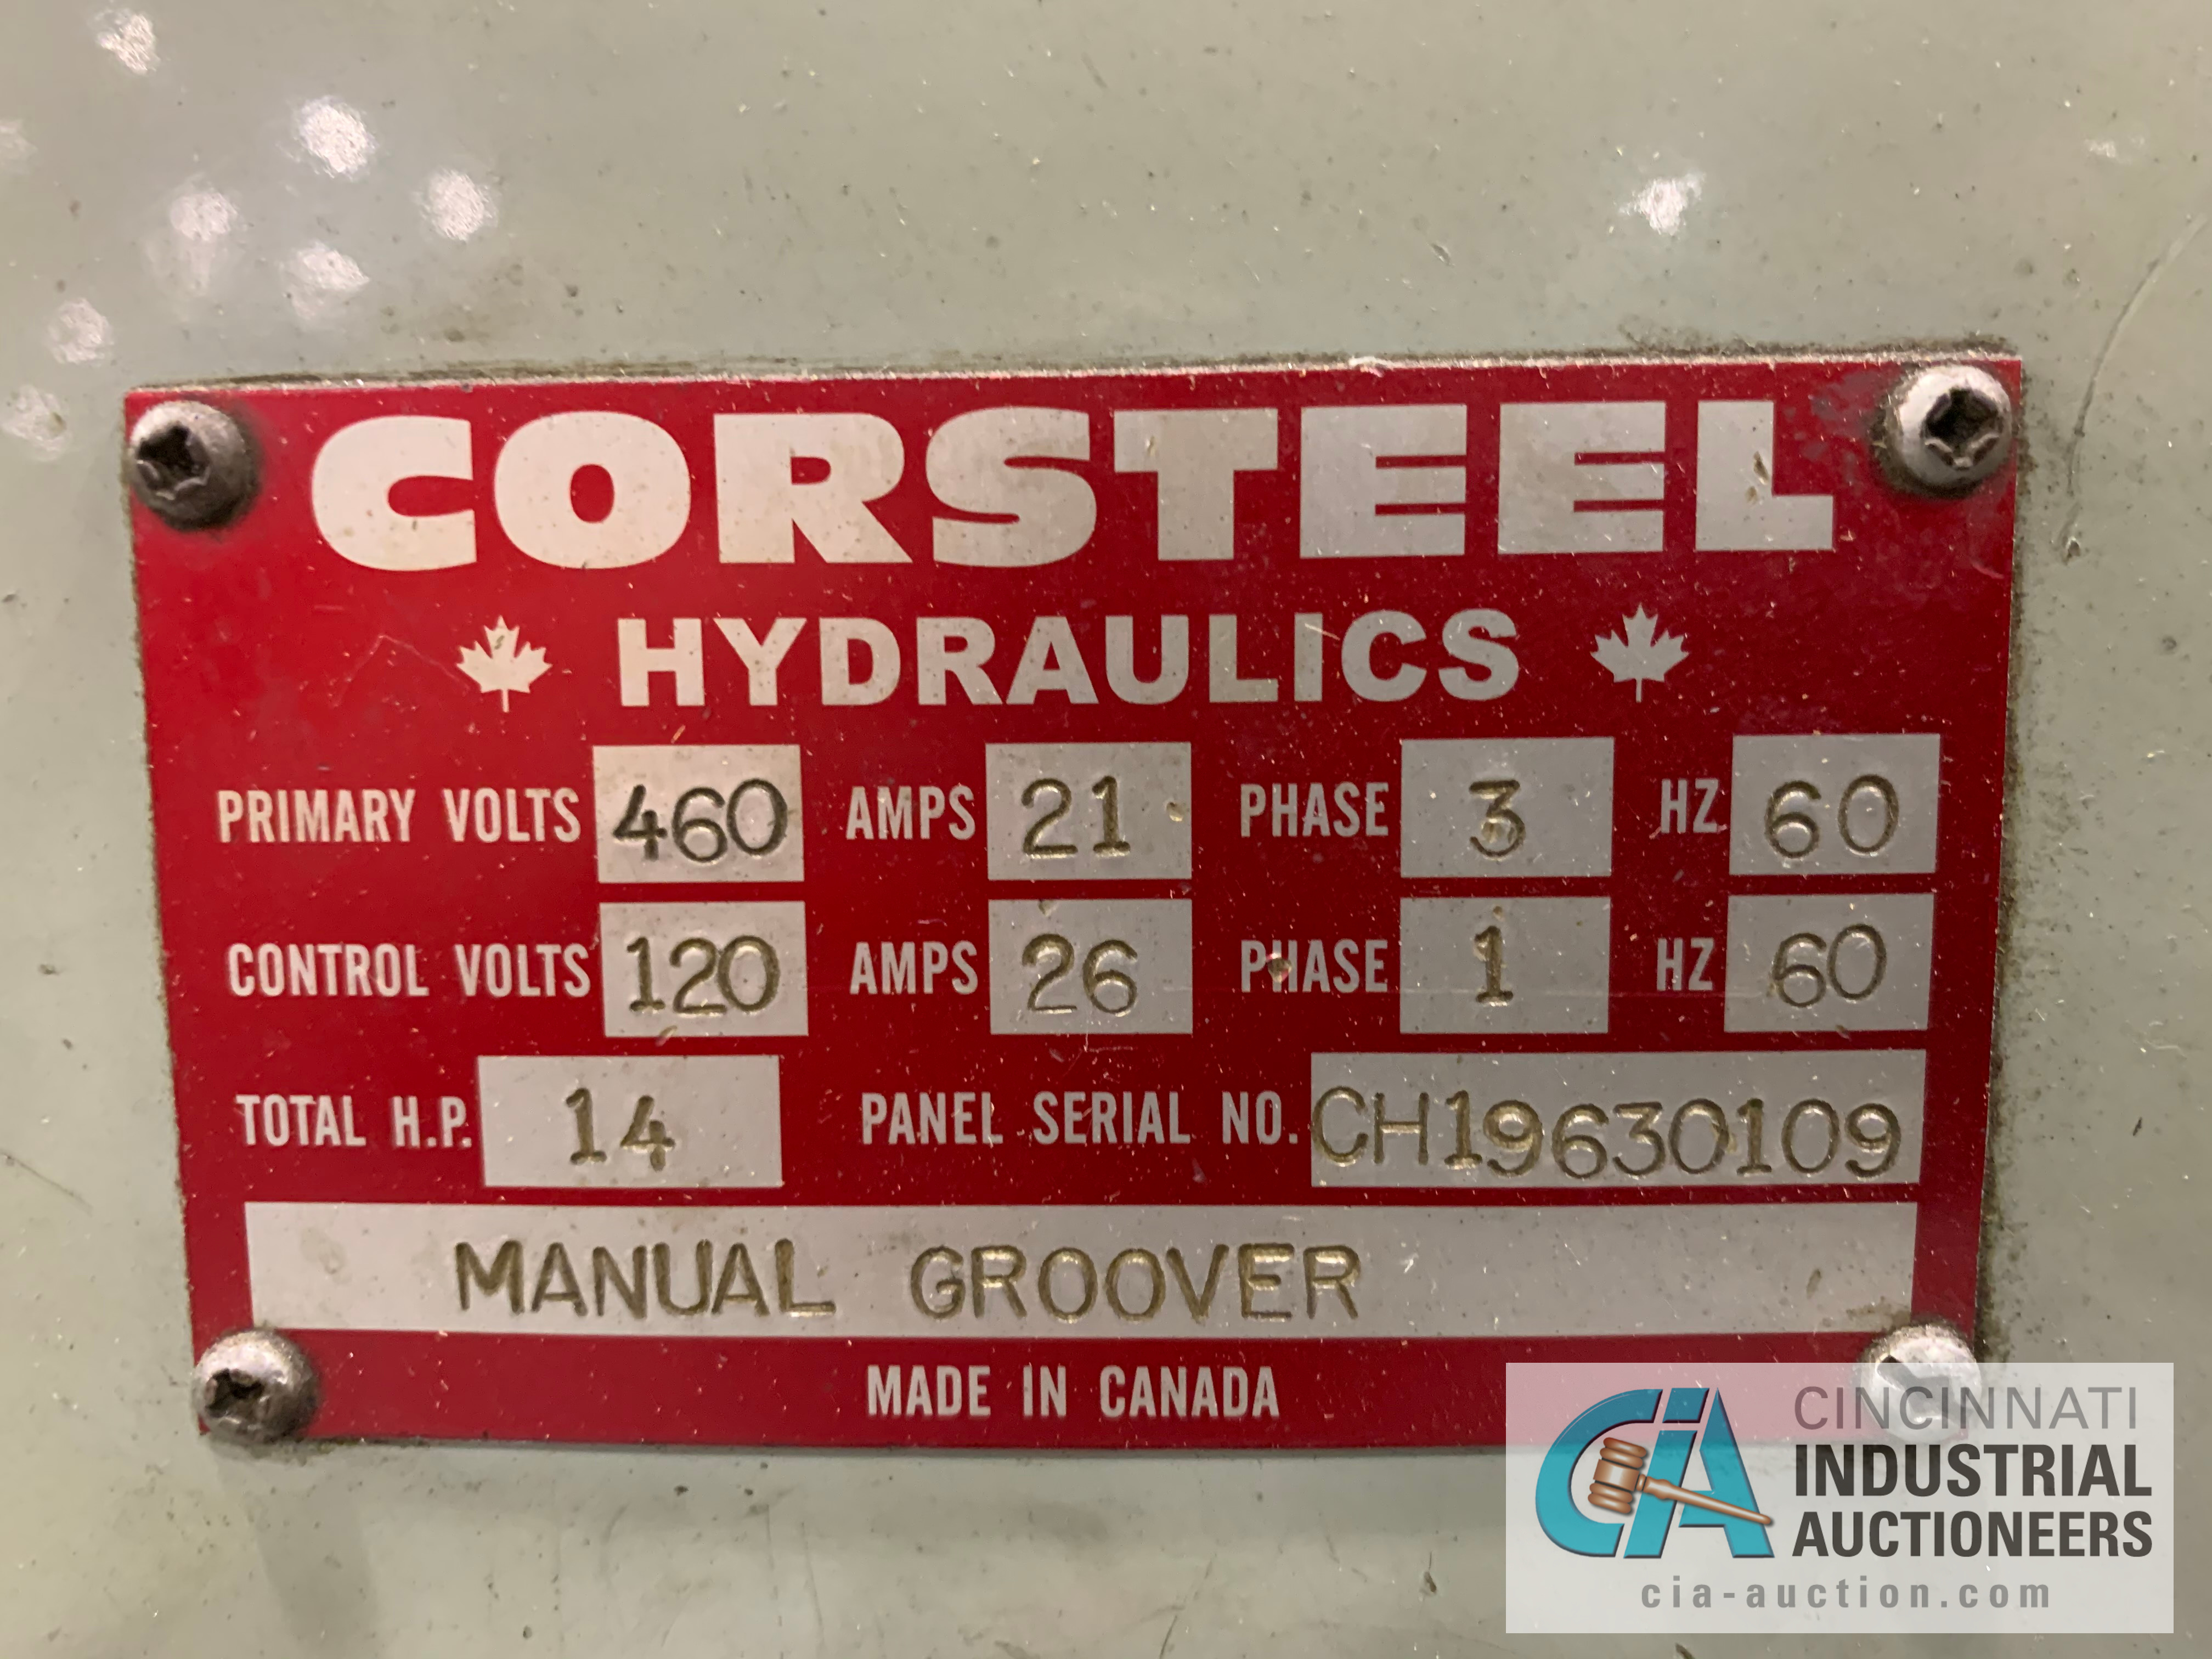 CORSTEEL MANUAL GROOVER; 14 HP **RIGGING FEE DUE TO SHOEMAKER $500.00** - Image 7 of 7